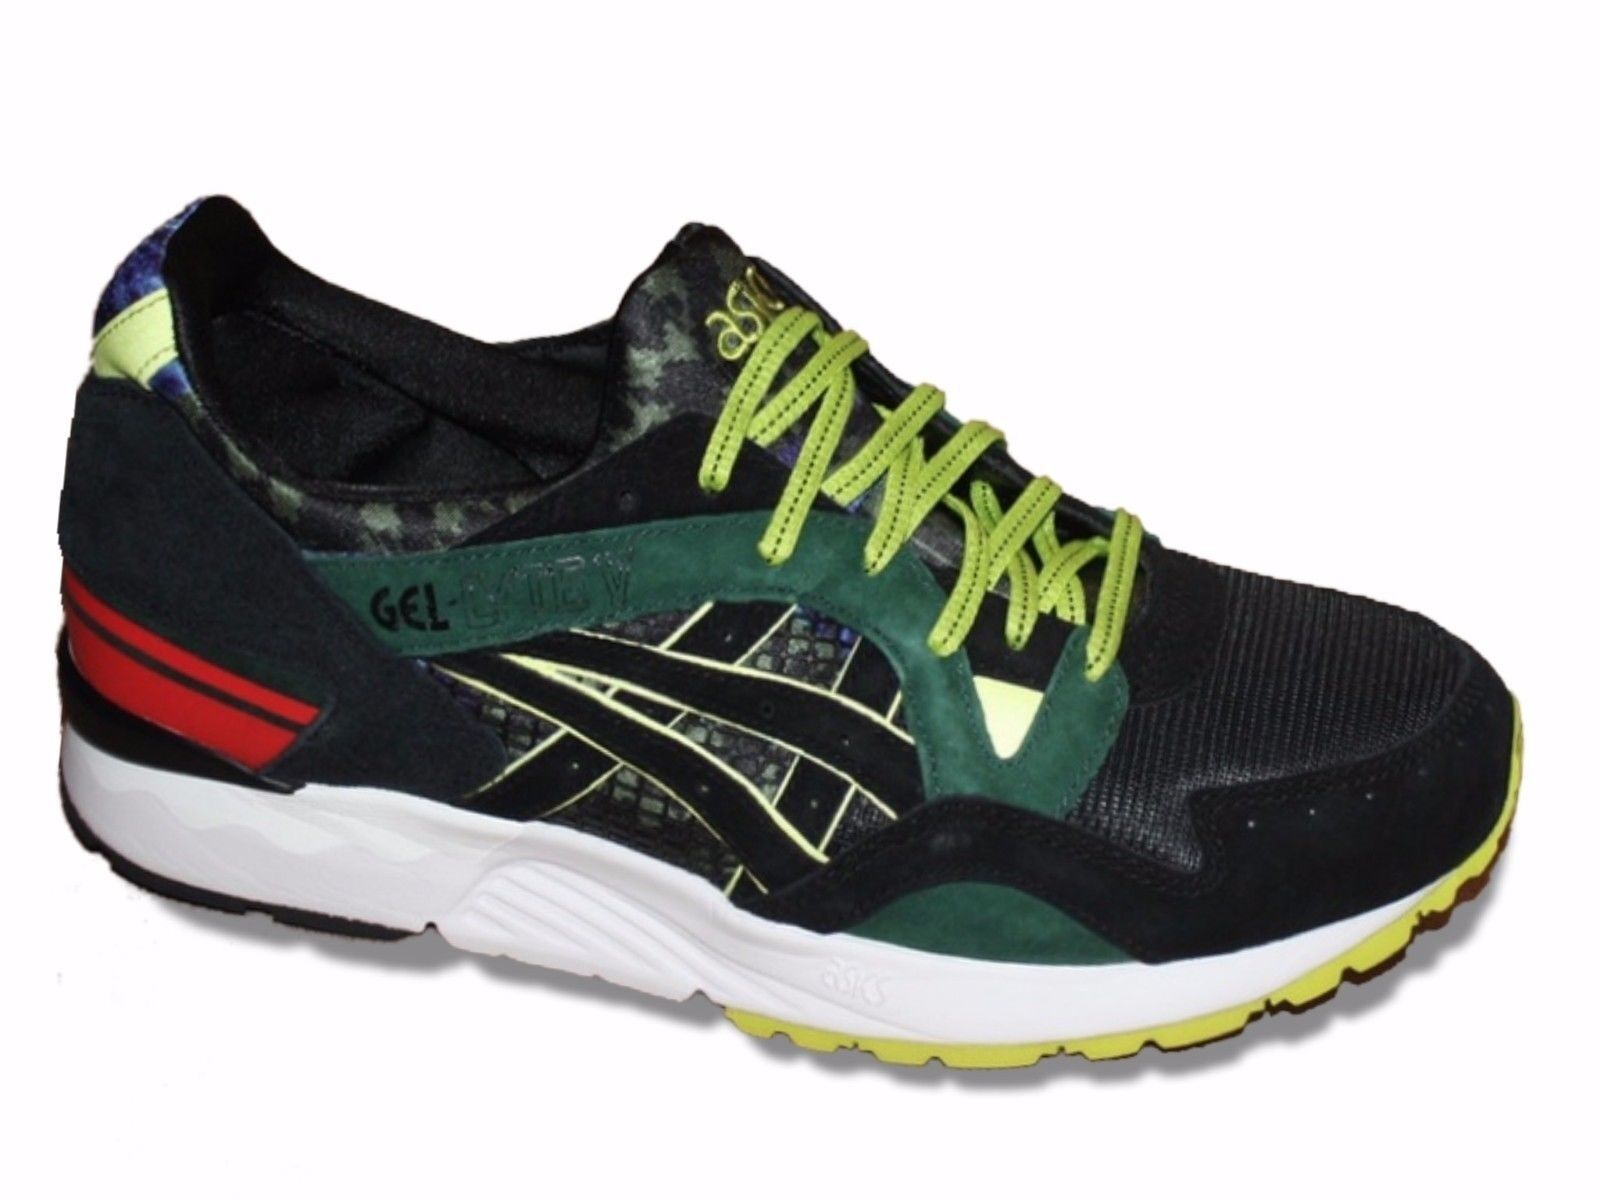 ASICS x WHIZ LIMITED x MITA SNEAKERS GEL-LYTE V 'RECOGNIZE' H50BK-8090.